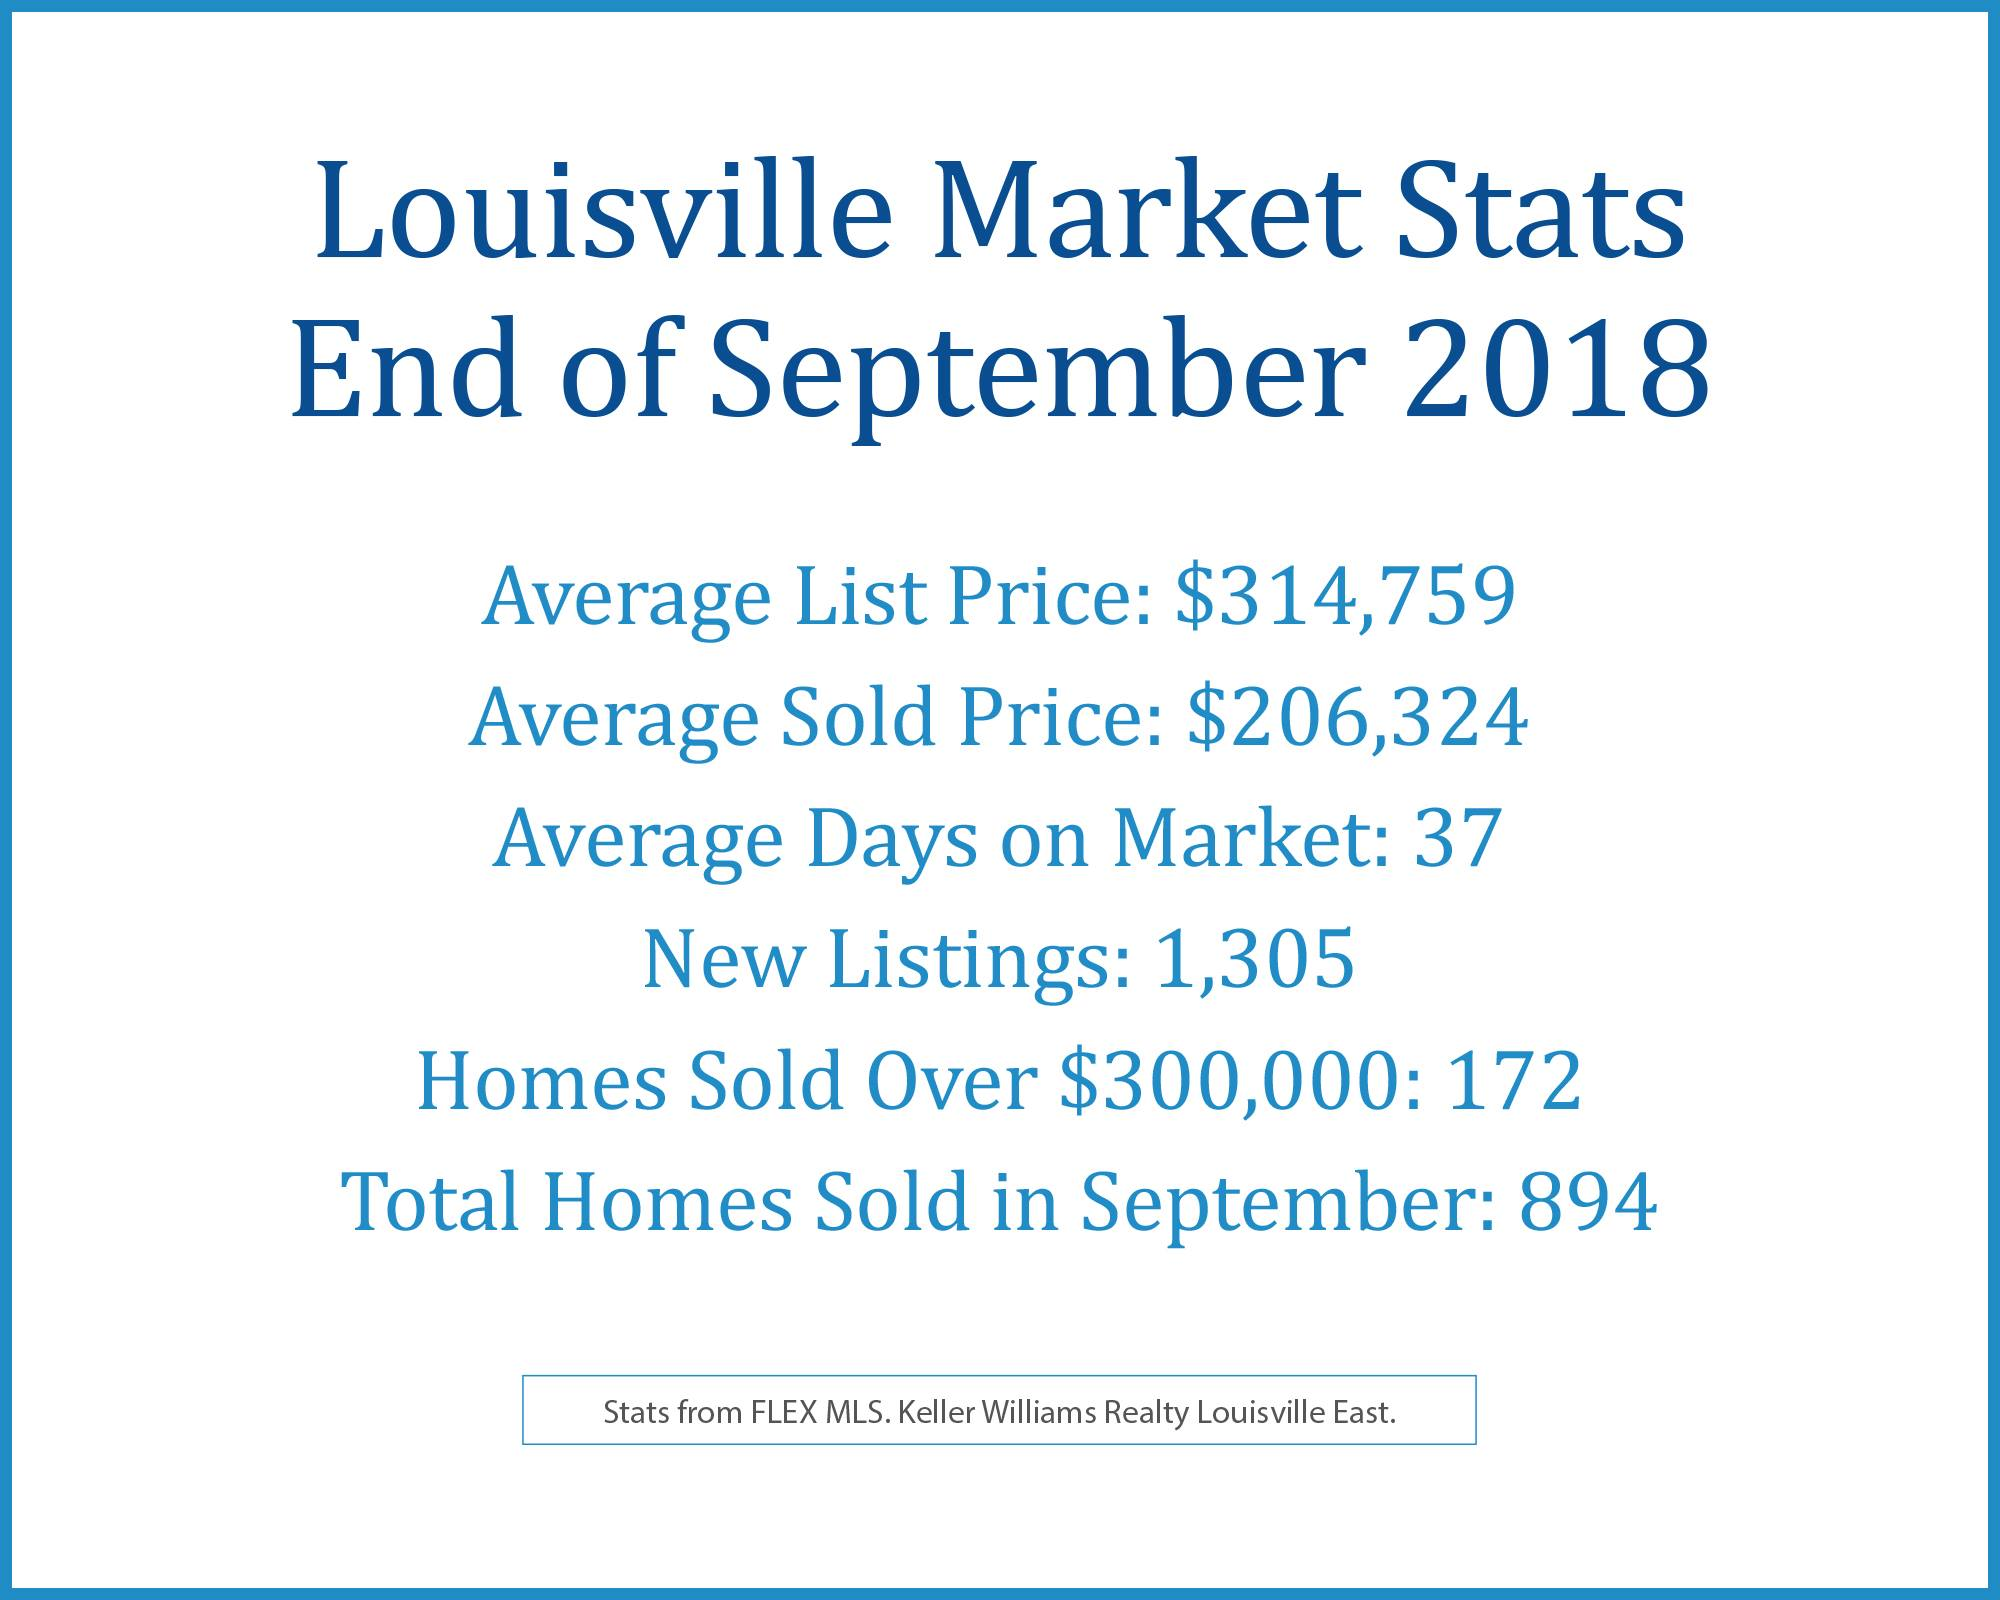 <a href='https://www.louisvillervg.com/index.php?types[]=1&types[]=2&areas[]=city:Louisville&beds=0&baths=0&min=0&max=100000000&map=0&quick=1&submit=Search' title='Search Properties in Louisville'>Louisville</a> September 2018 Stats